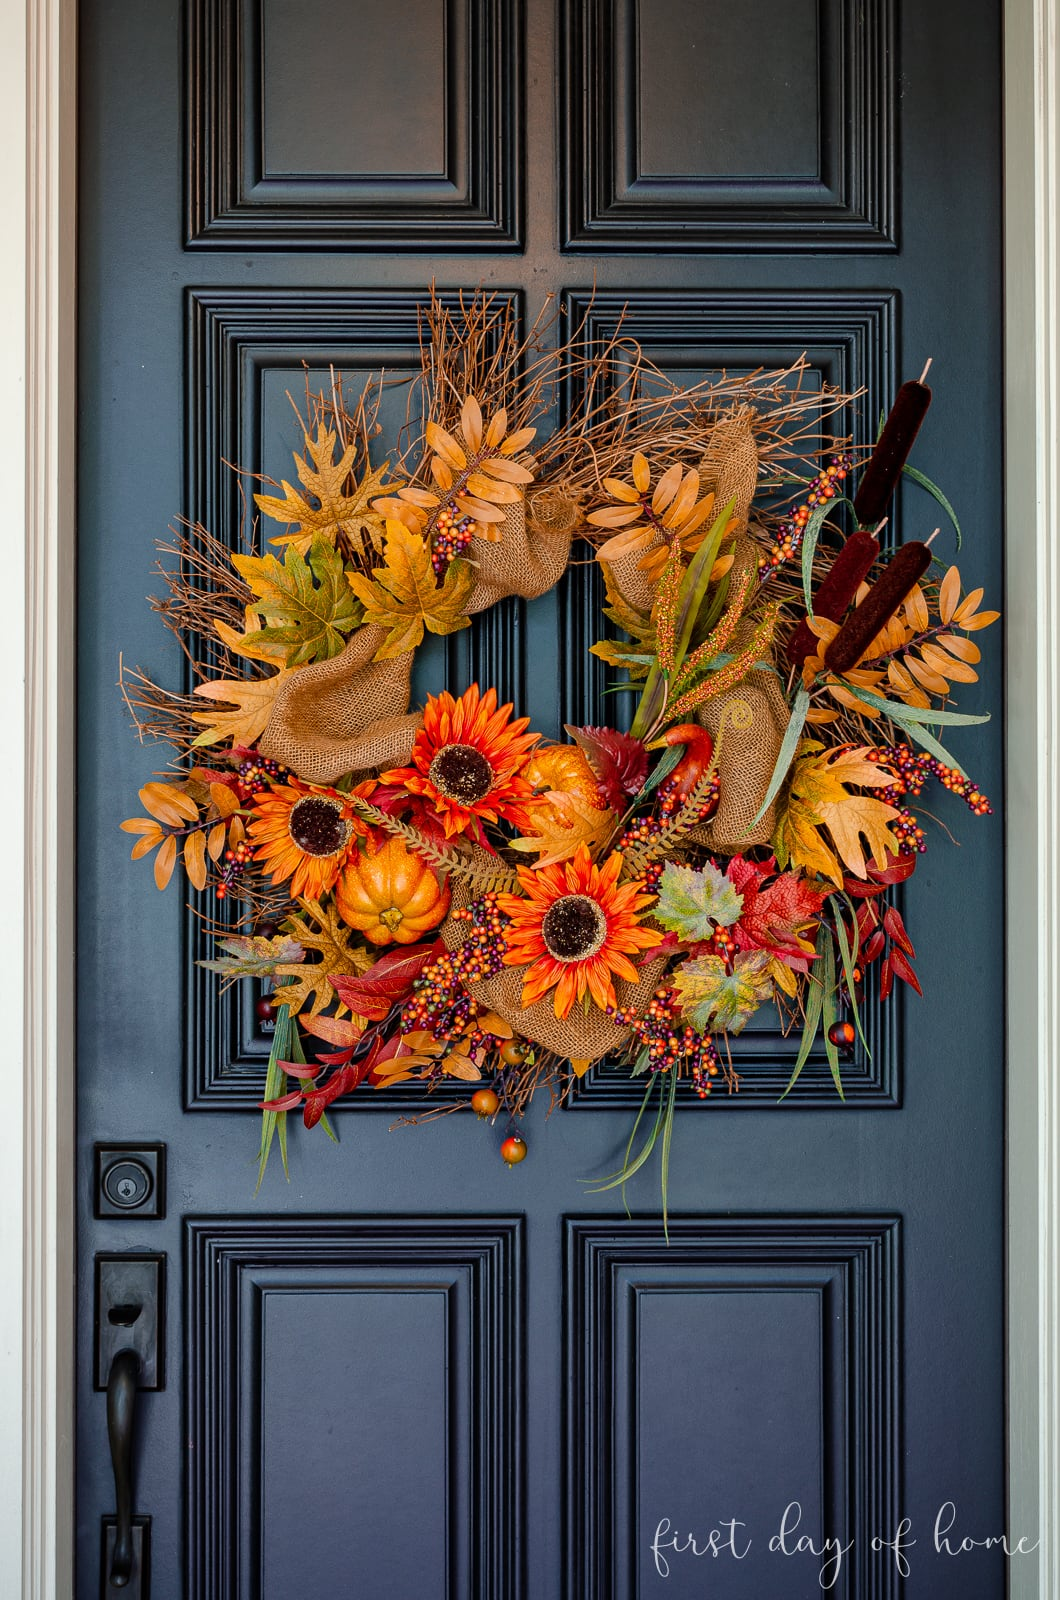 Fall grapevine wreath with leaves, pumpkins and sunflowers hanging on black front door